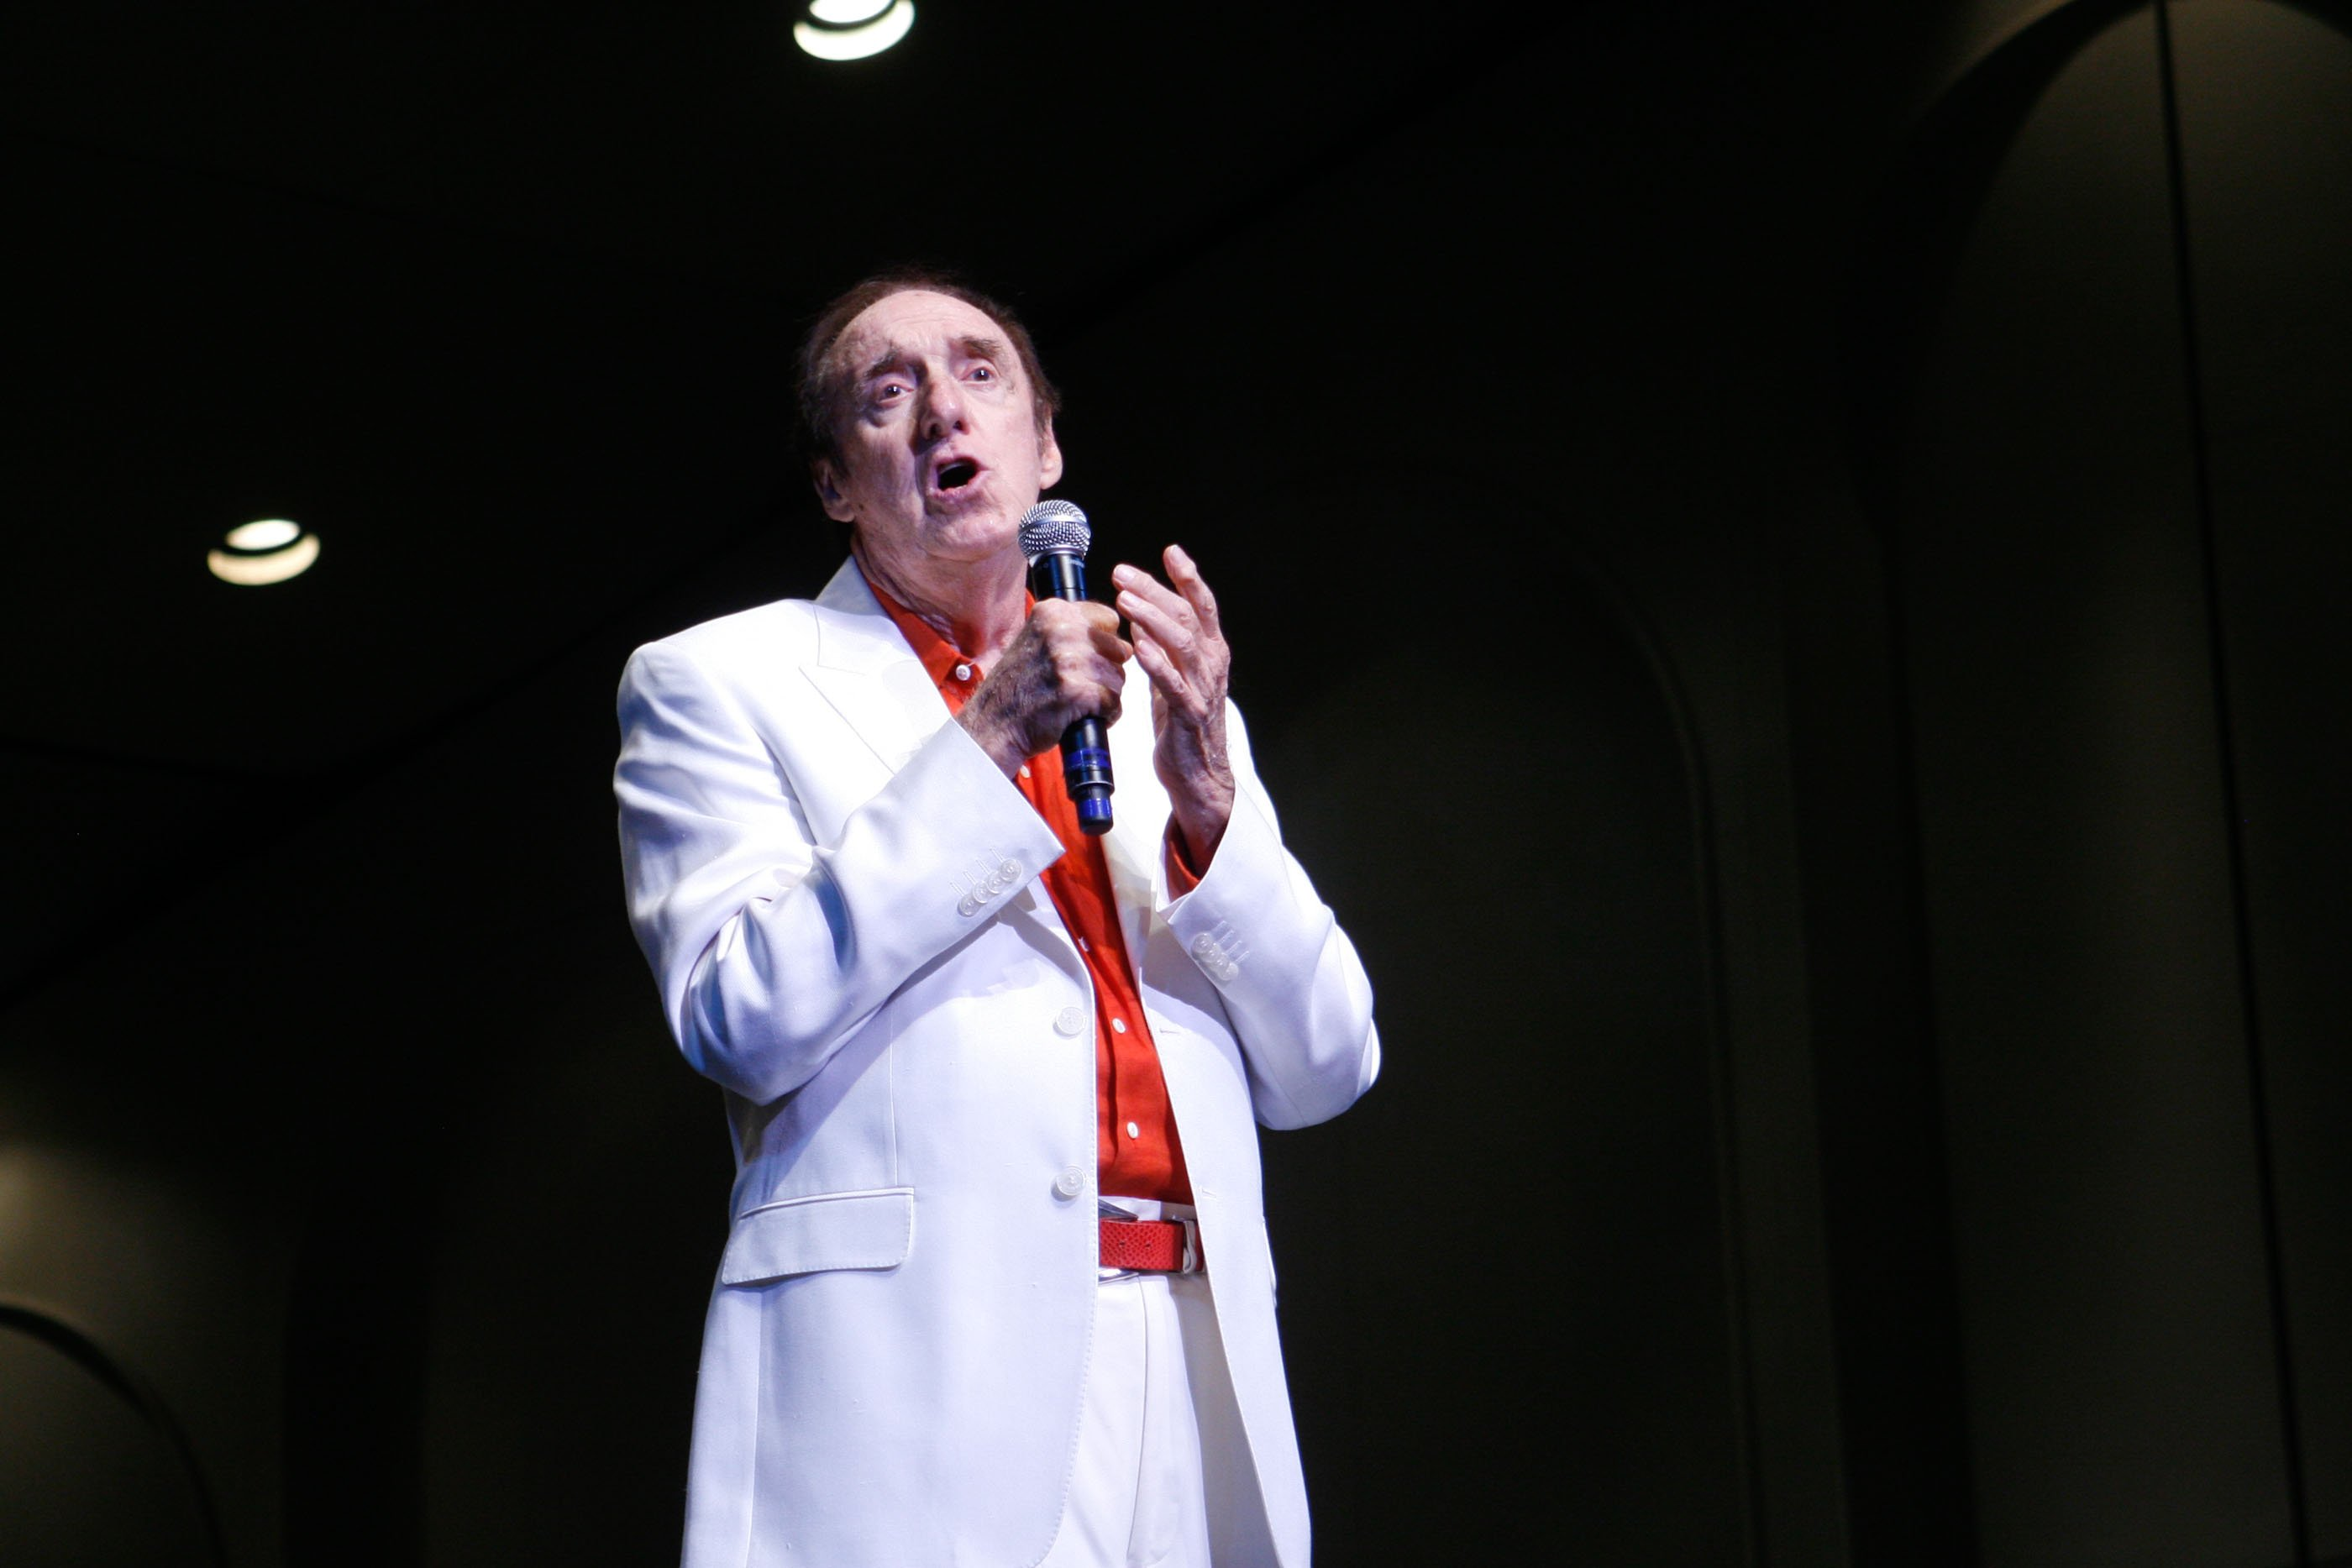 Jim Nabors sings 'Silent Night' during the Second Annual Na Mele o na Keiki, 'Music for the Children' at the Neal S. Blaisdell Center. | Source: Wikimedia Commons